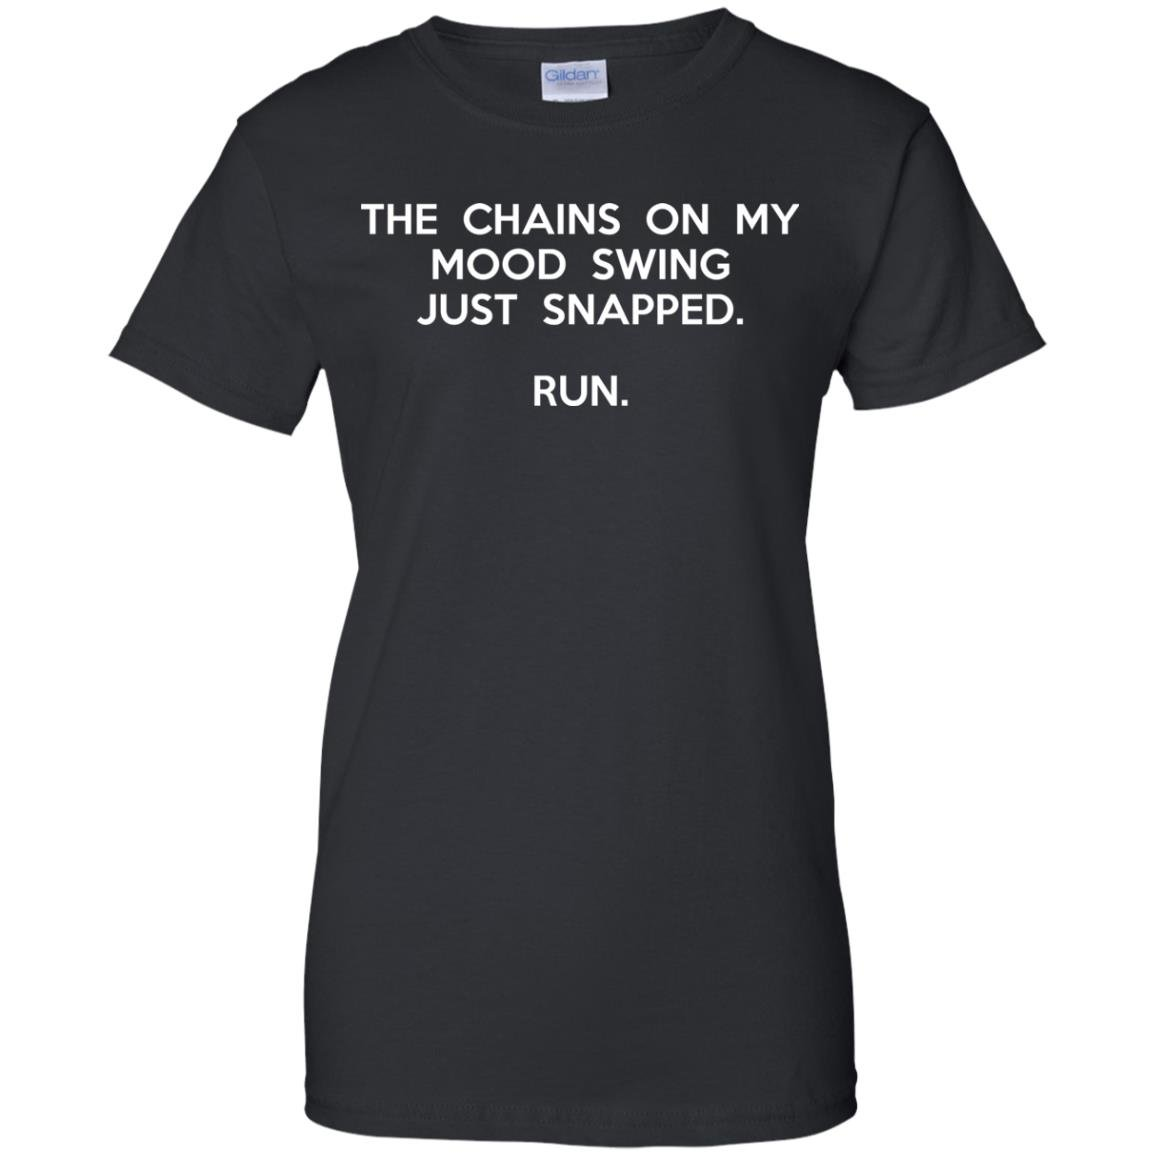 image 2947 - The chains on my mood swing just snapped shirt